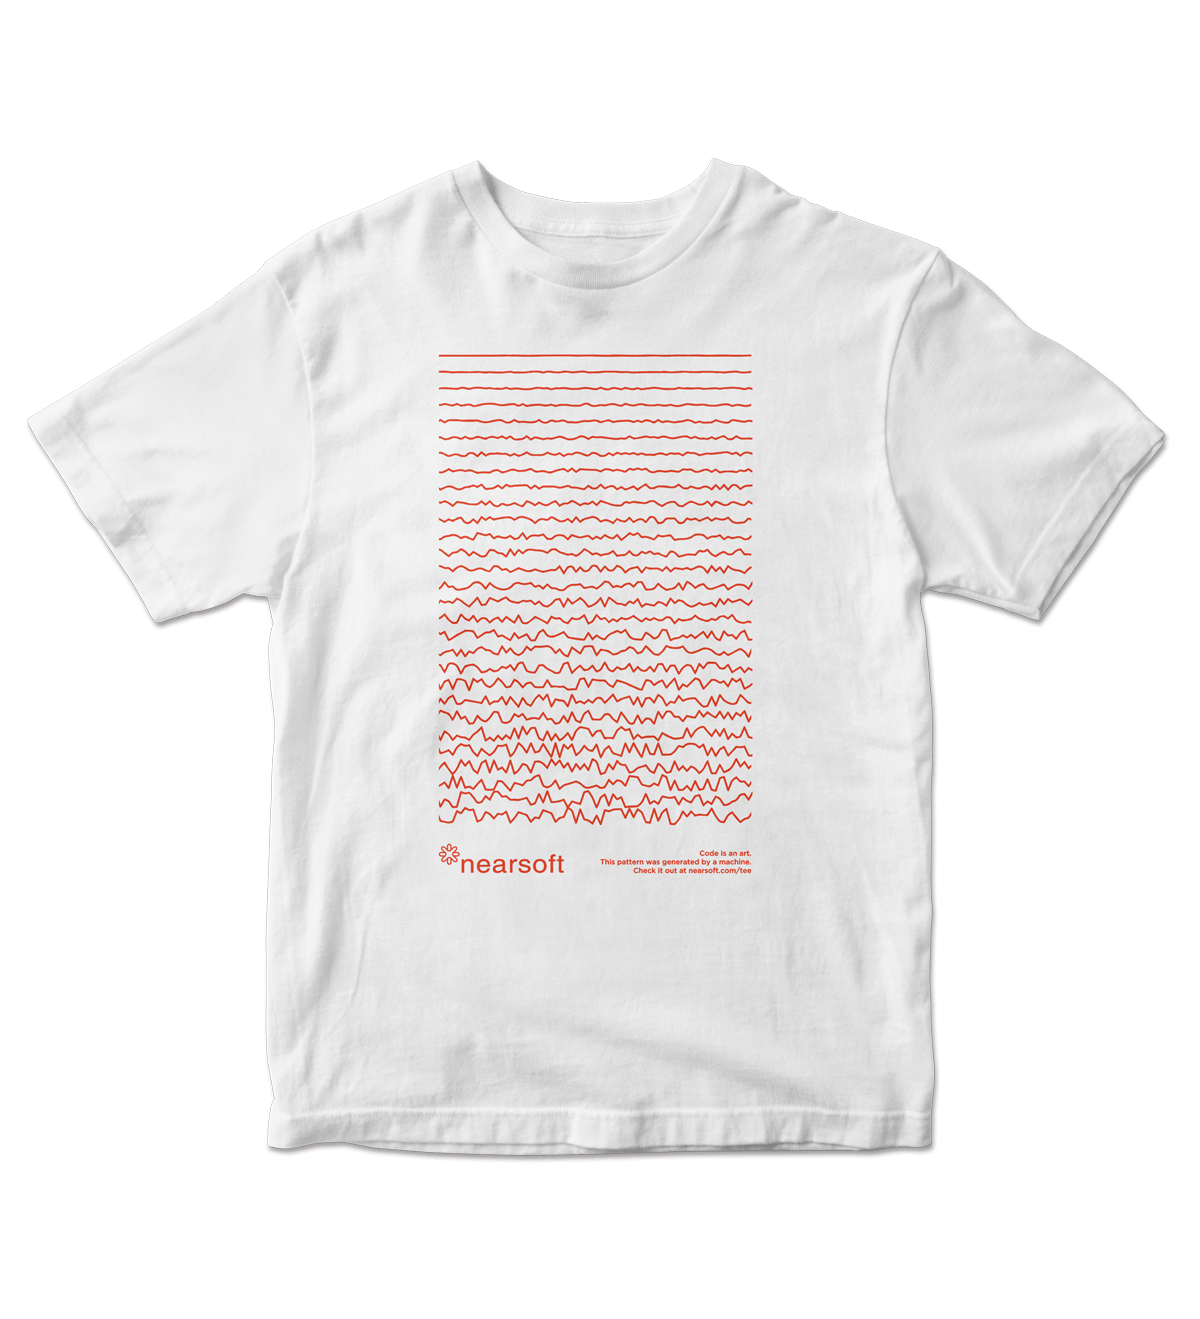 Nearsoft Code Tee - White